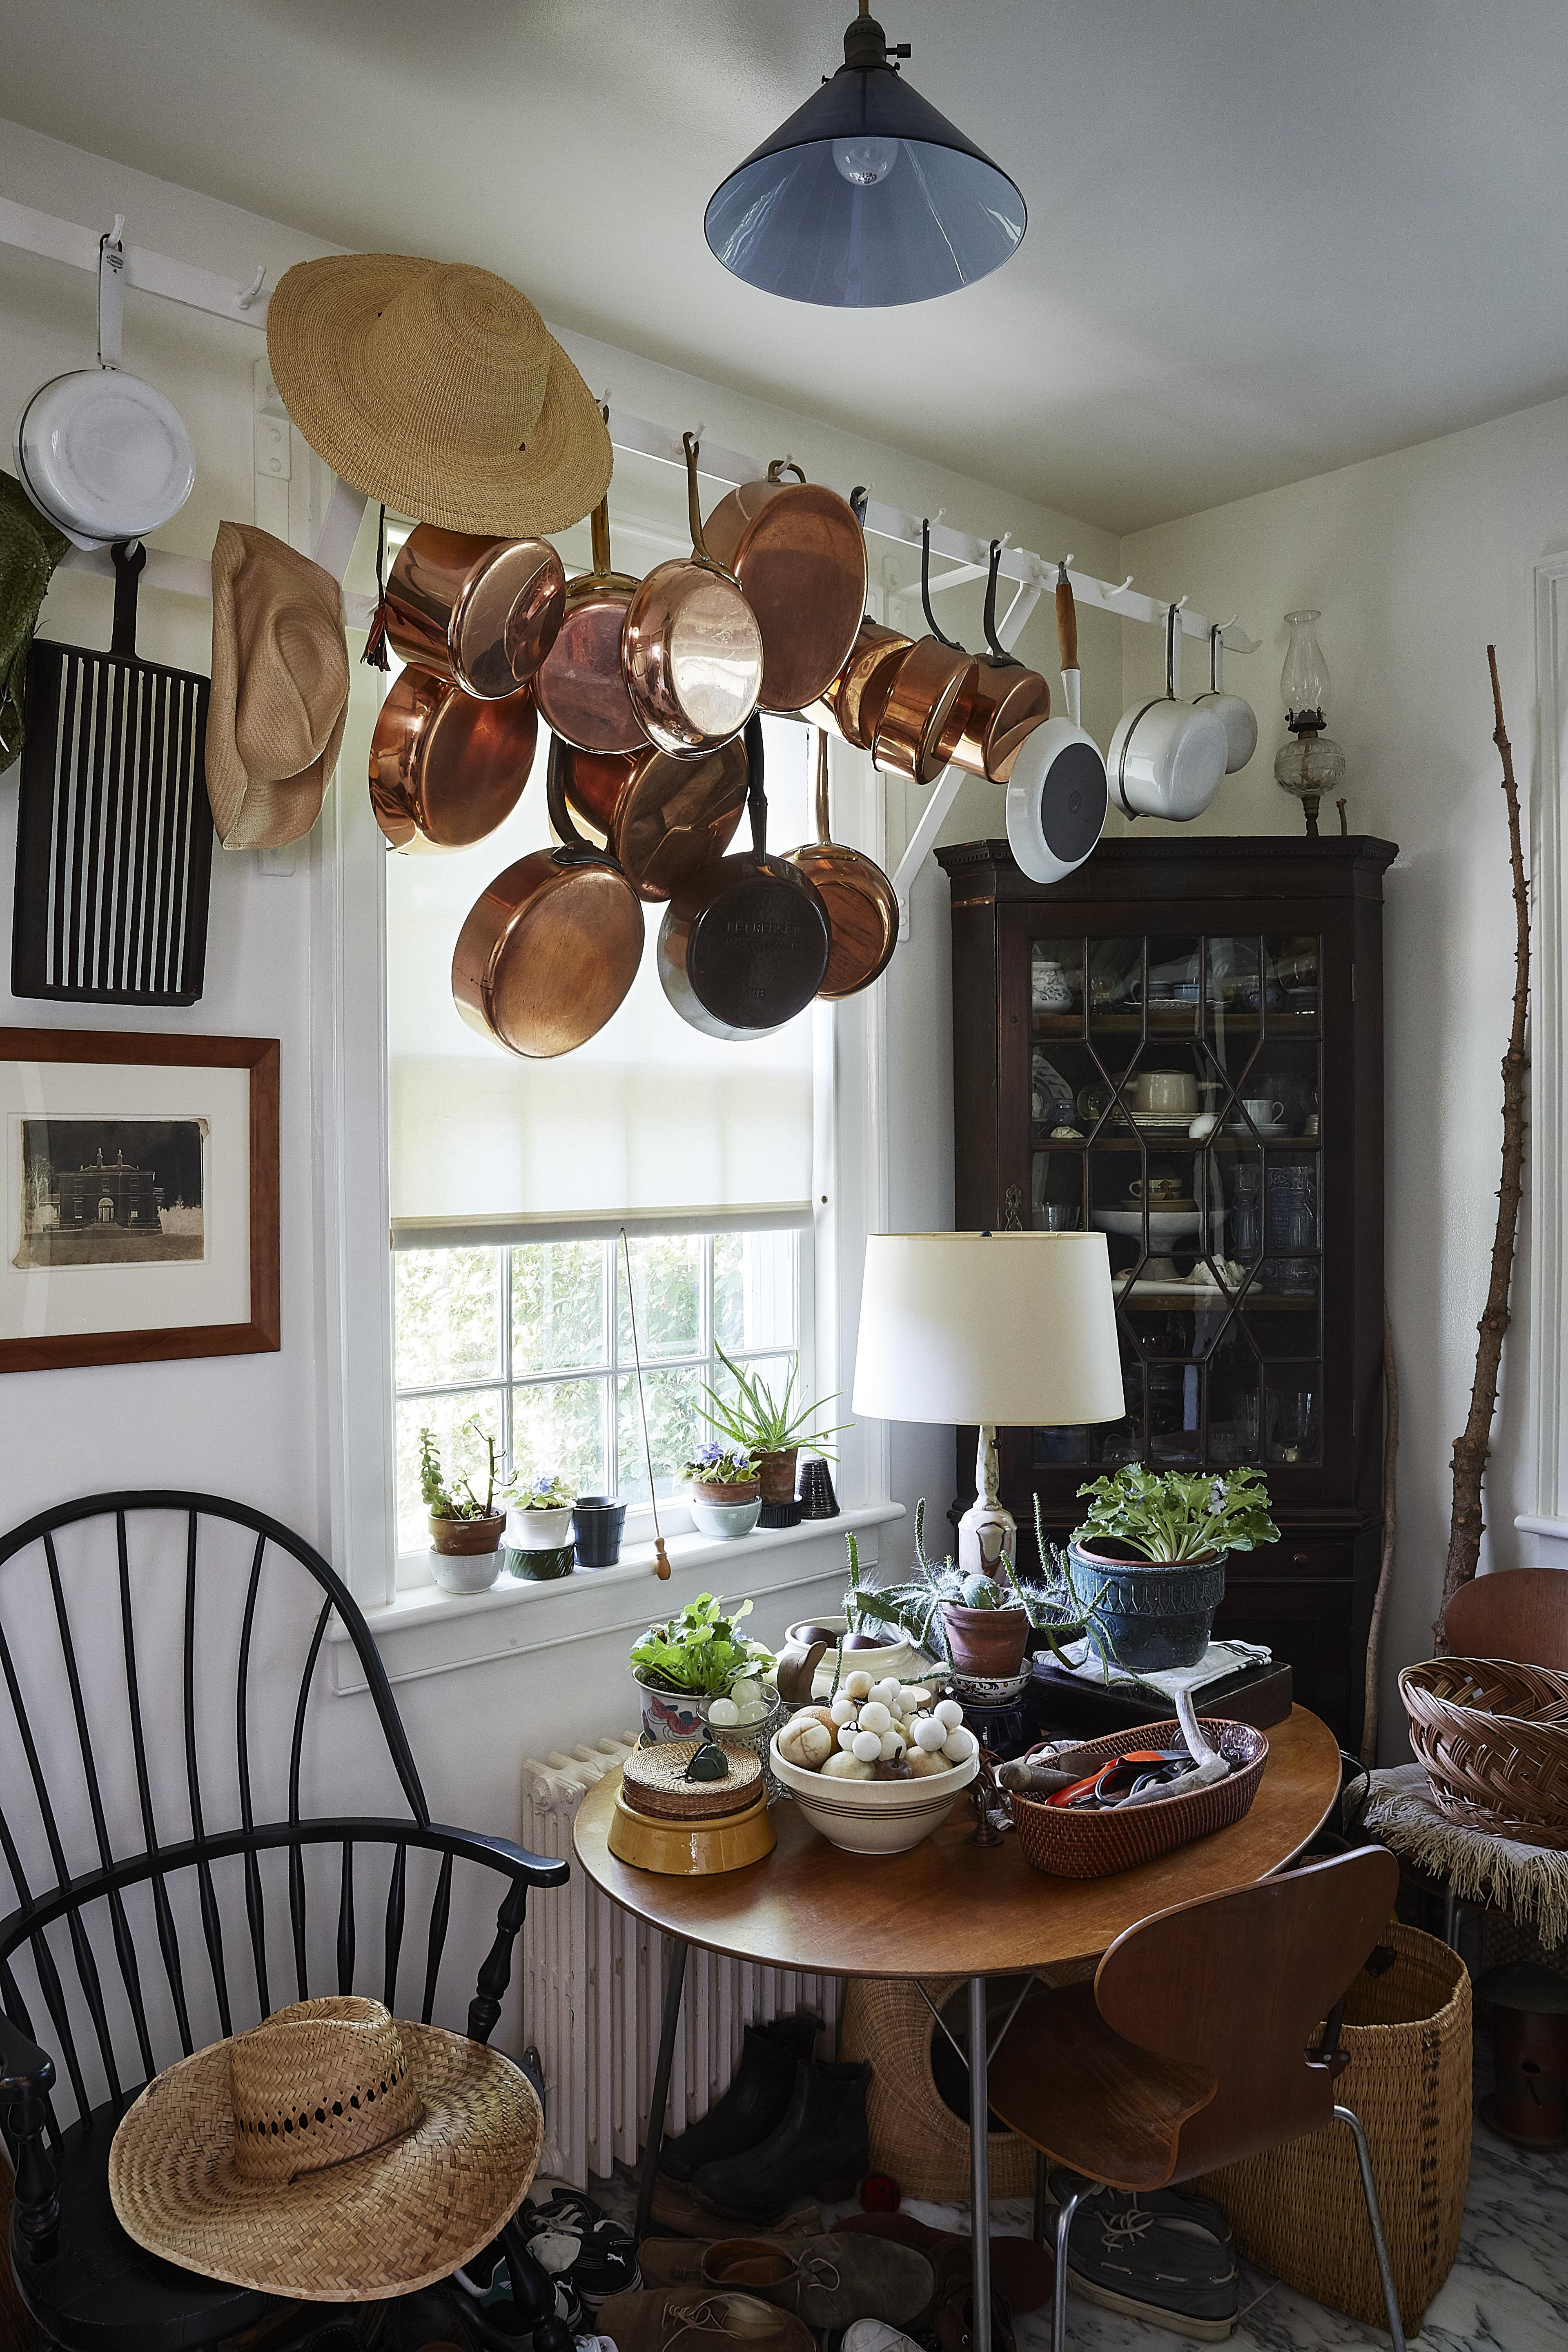 Antique Furniture Long island Luxury 10 Hidden Treasures to Look for at Estate Sales